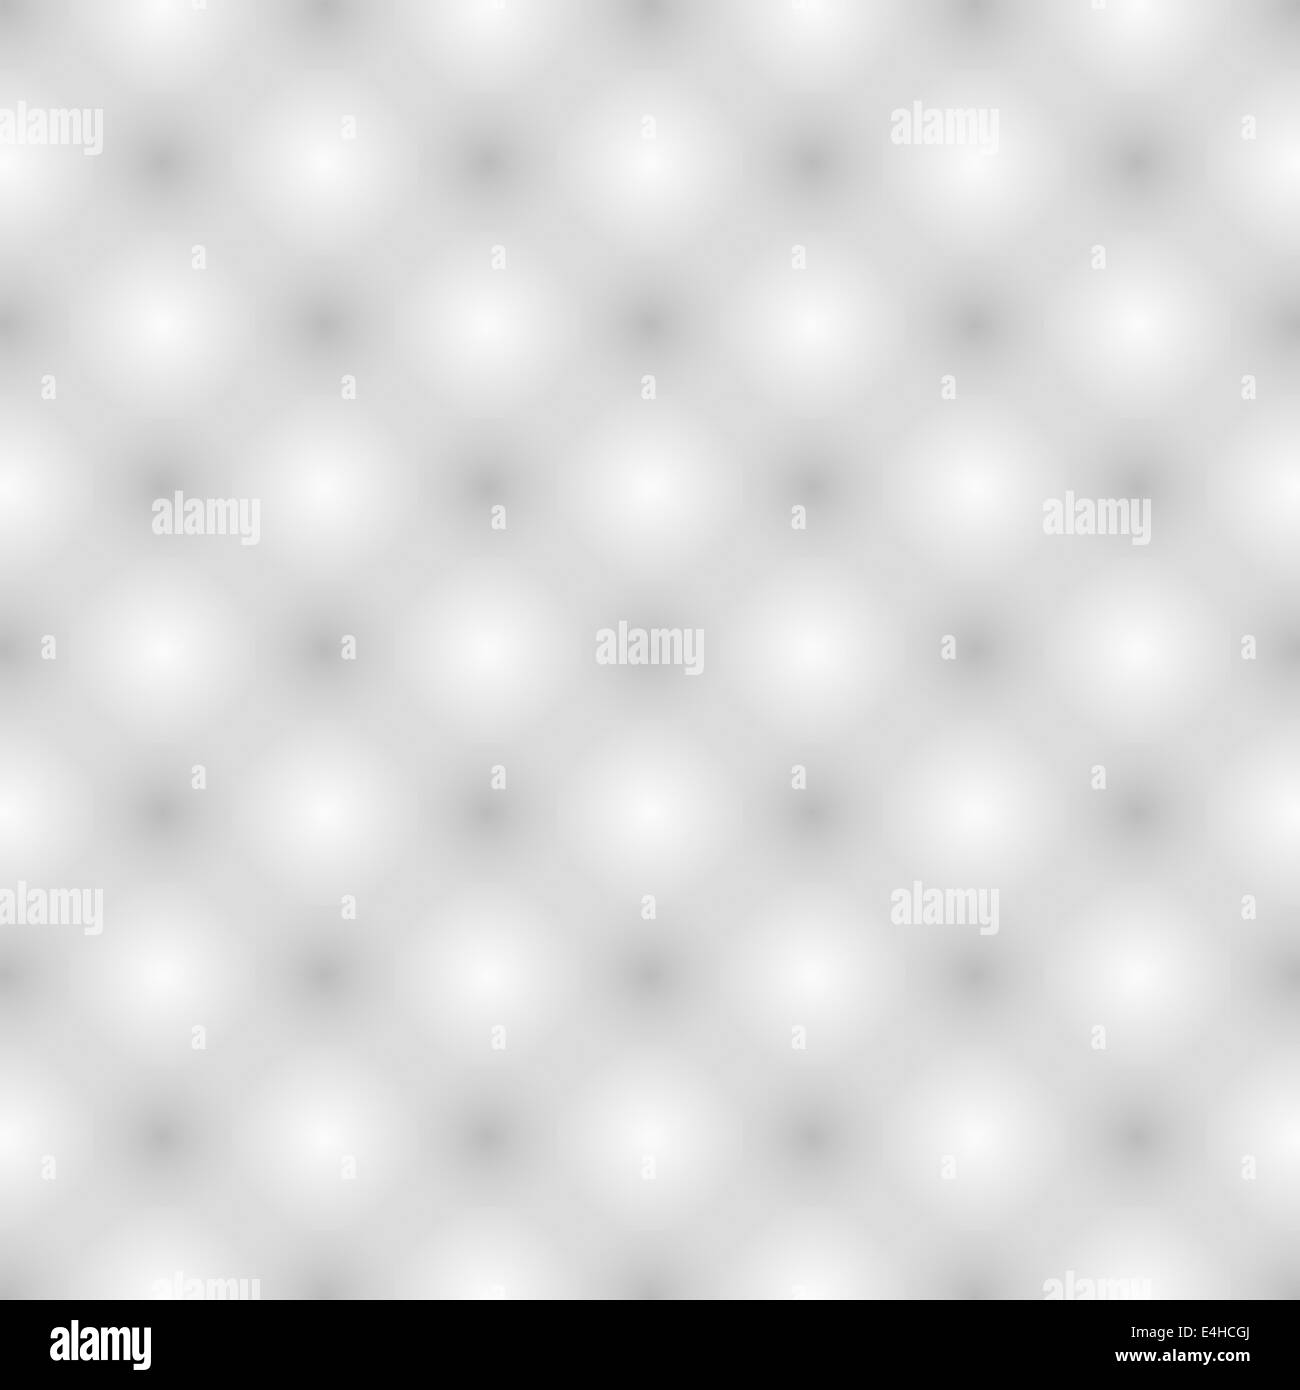 Seamless abstract monochrome blurred pattern Stock Photo